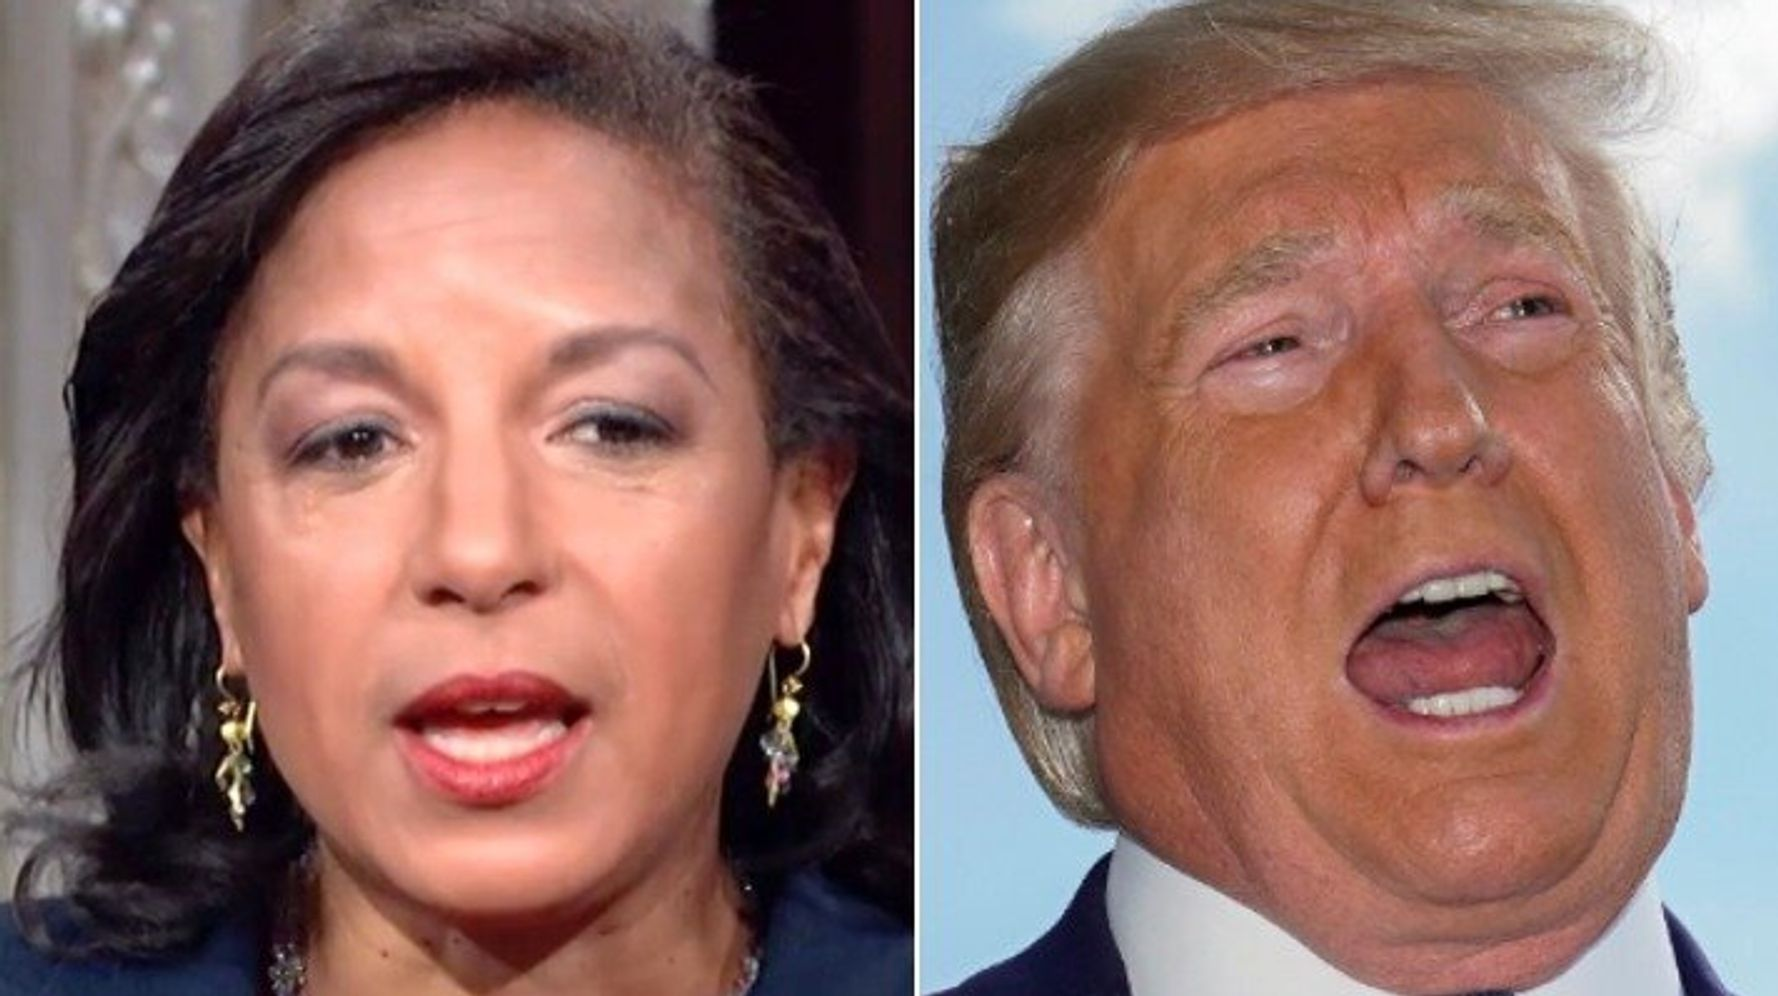 Westlake Legal Group 5d9beb732100002a04333eb8 'Bats**t Crazy!' Susan Rice Unloads On Trump Over Syria Withdrawal